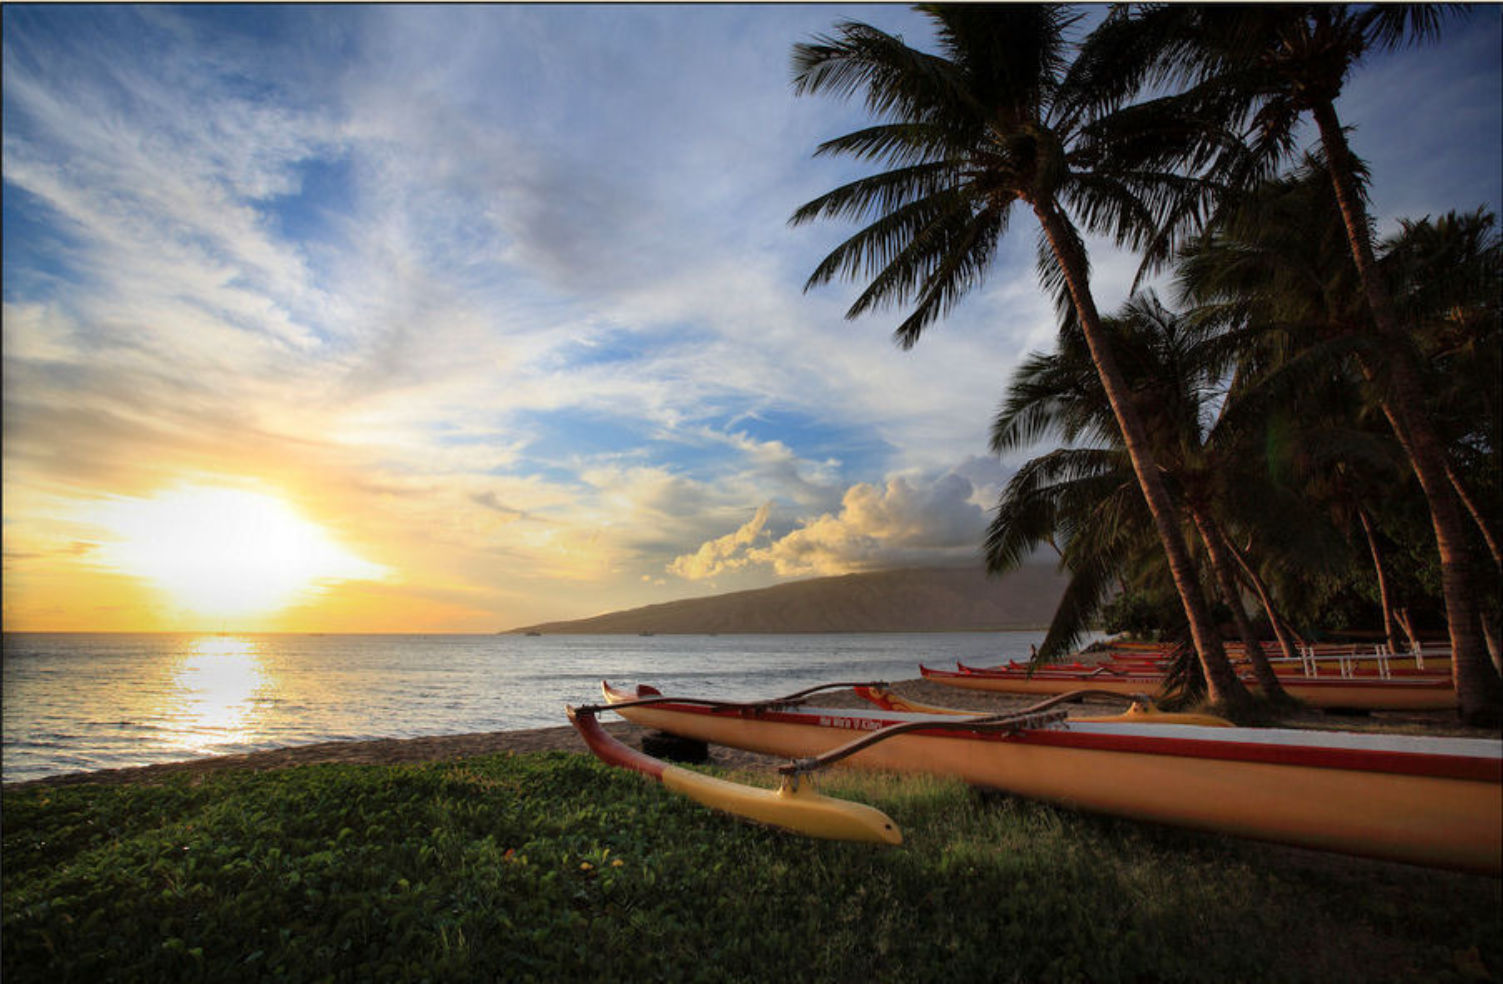 canoes-on-the-beach-in-maui